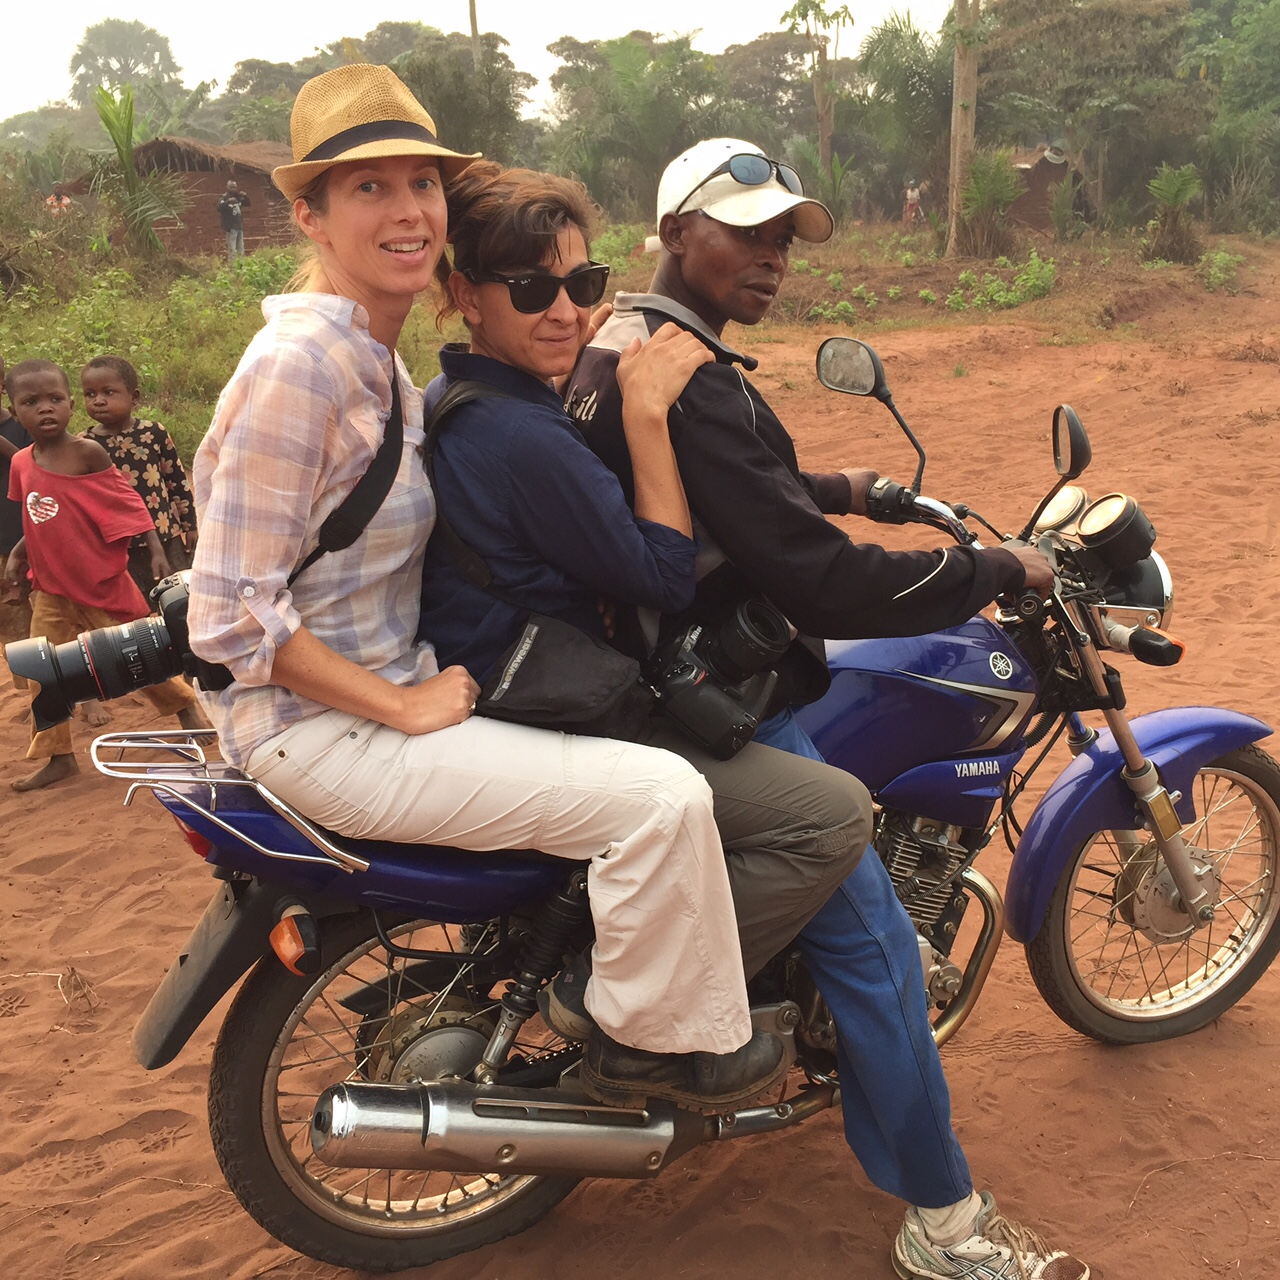 TIME's Africa Bureau Chief Aryn Baker and photographer Lynsey Addario on assignment for TIME in the Democratic Republic of Congo.